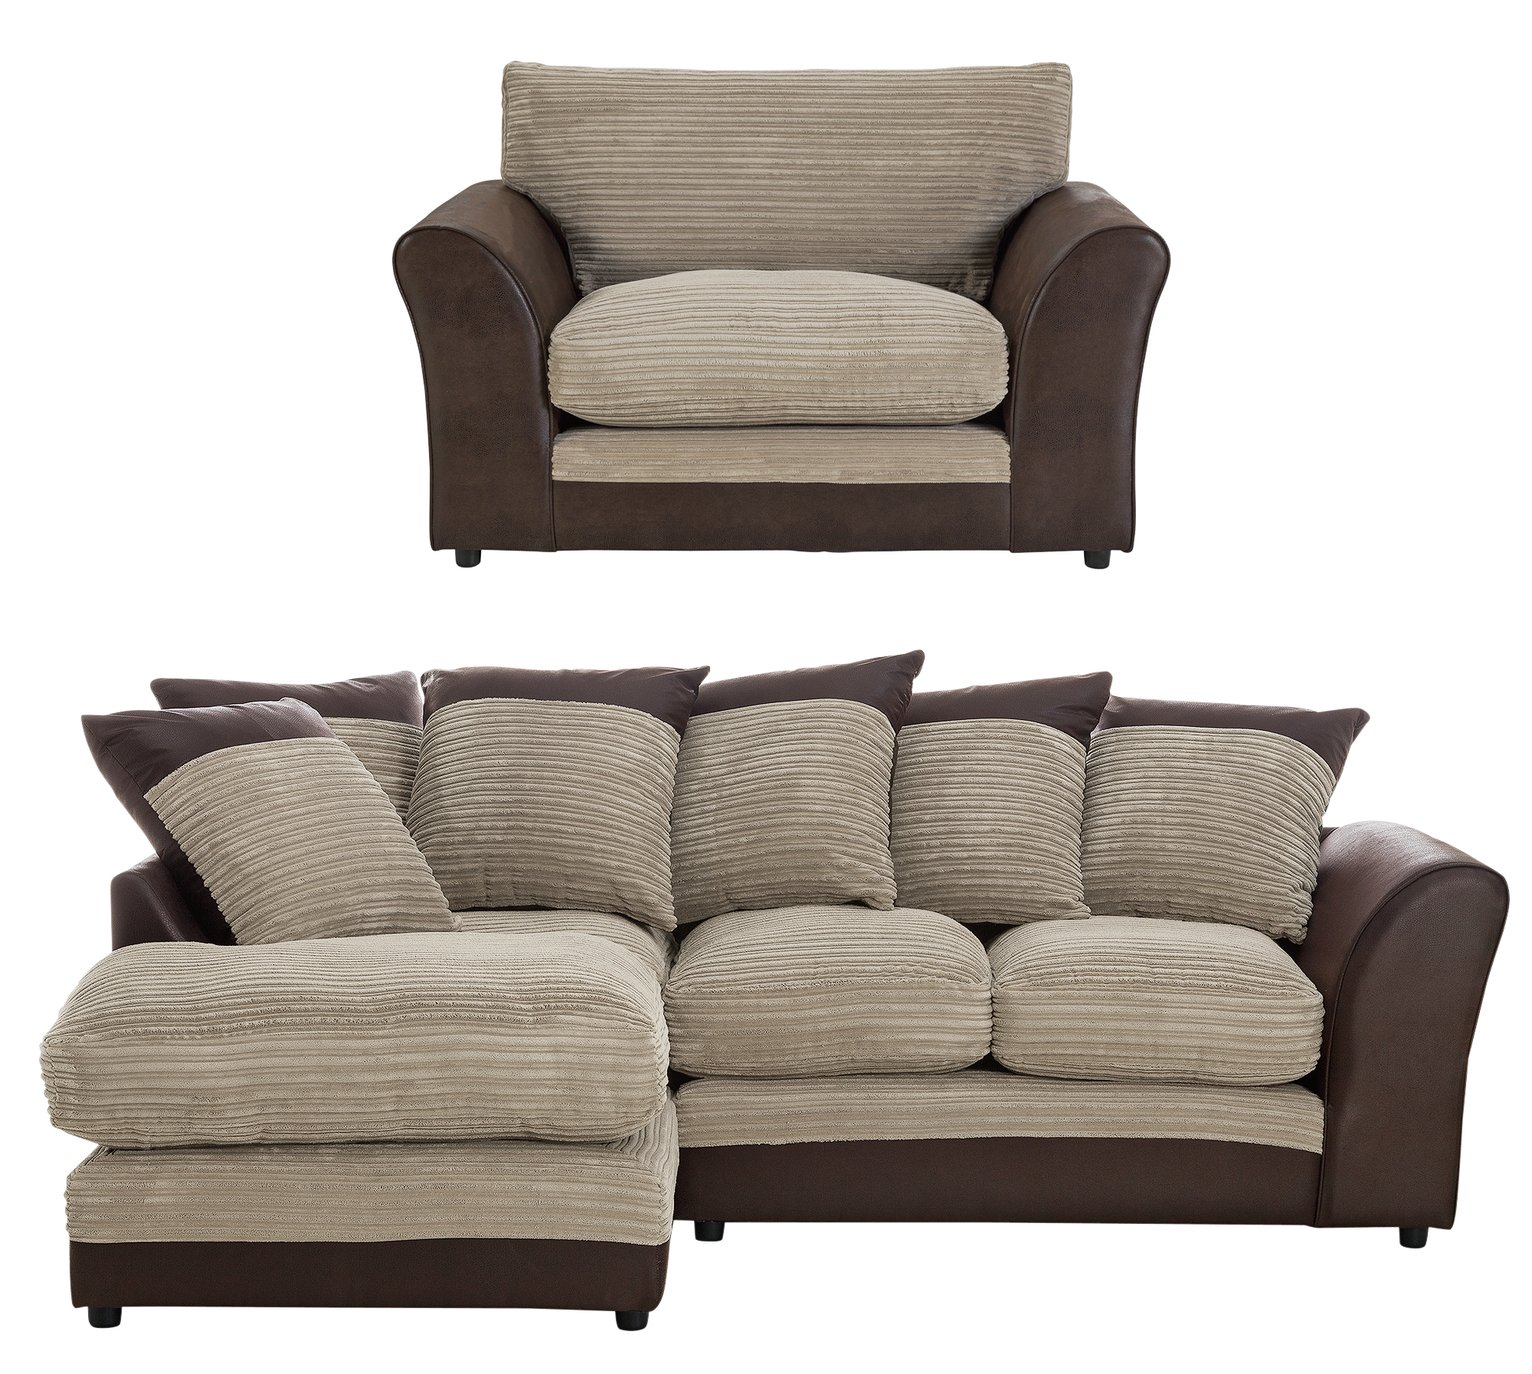 sofa package deals uk sofas valencia modelo esther packages page 1 argos price tracker